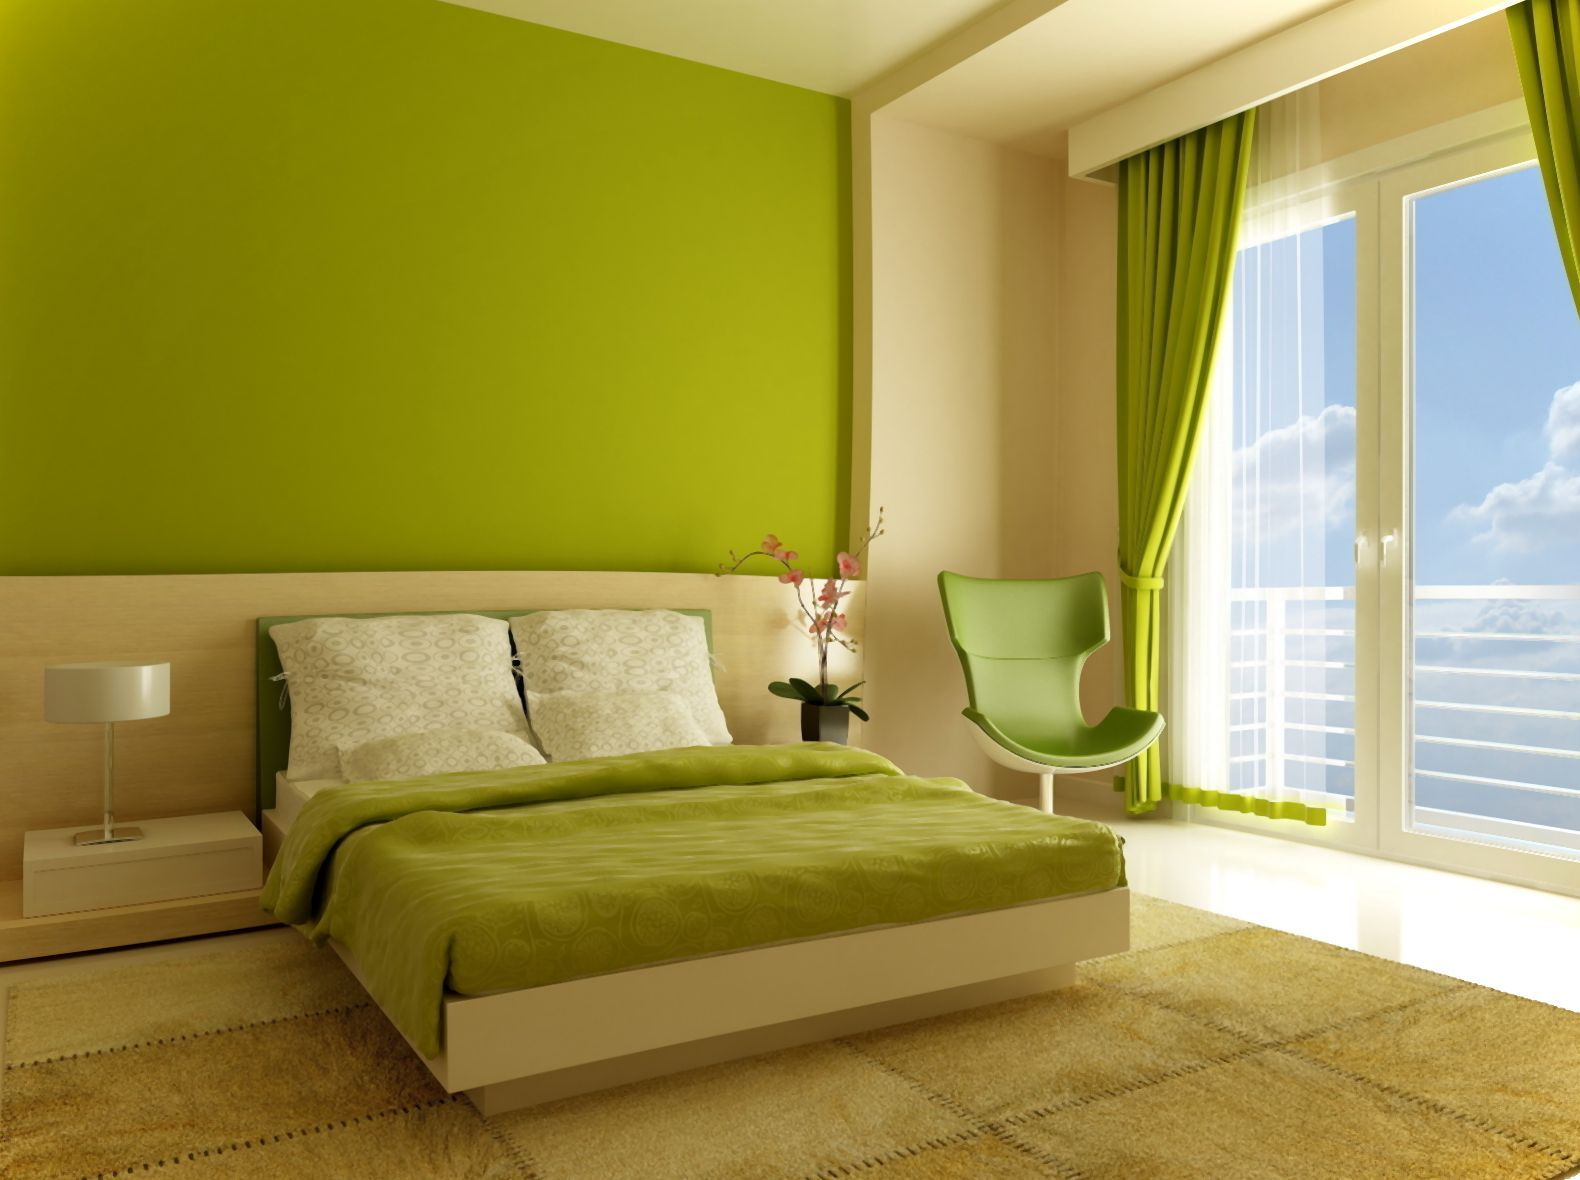 bedroom colors green. interior cheerful green bedroom decorating idea with minimalist furniture and cozy chair casual colour schemes - pictures, photos, colors